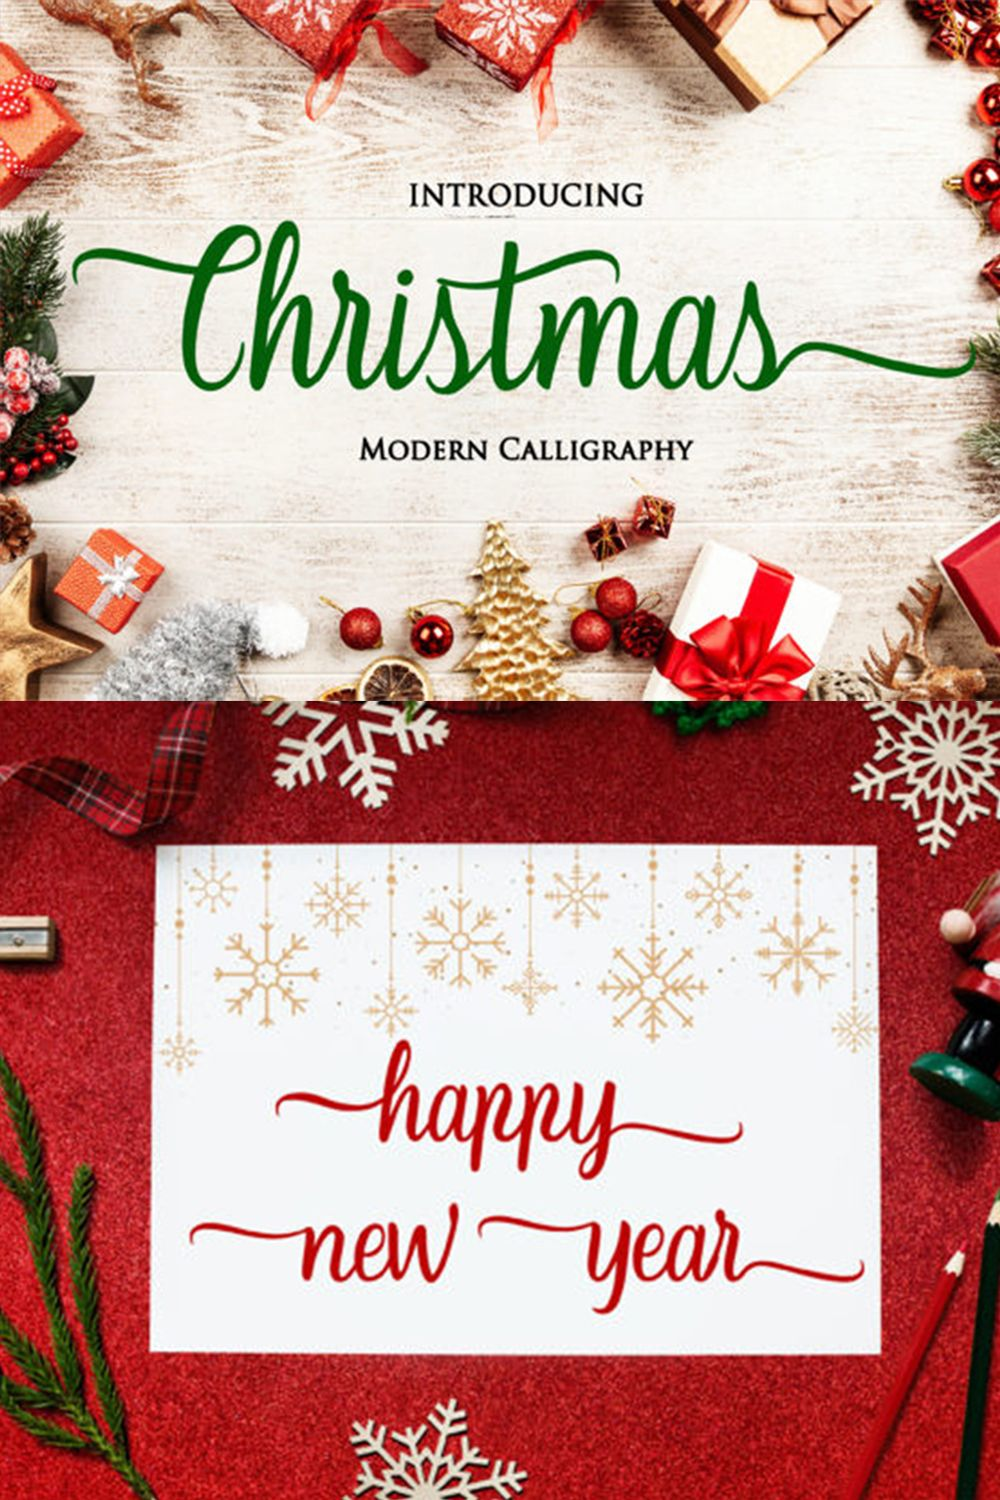 Christmas Script Font Free Download This Is The Perfect Font For All Things Holidays Christmas Fonts Free Fonts Download Christmas